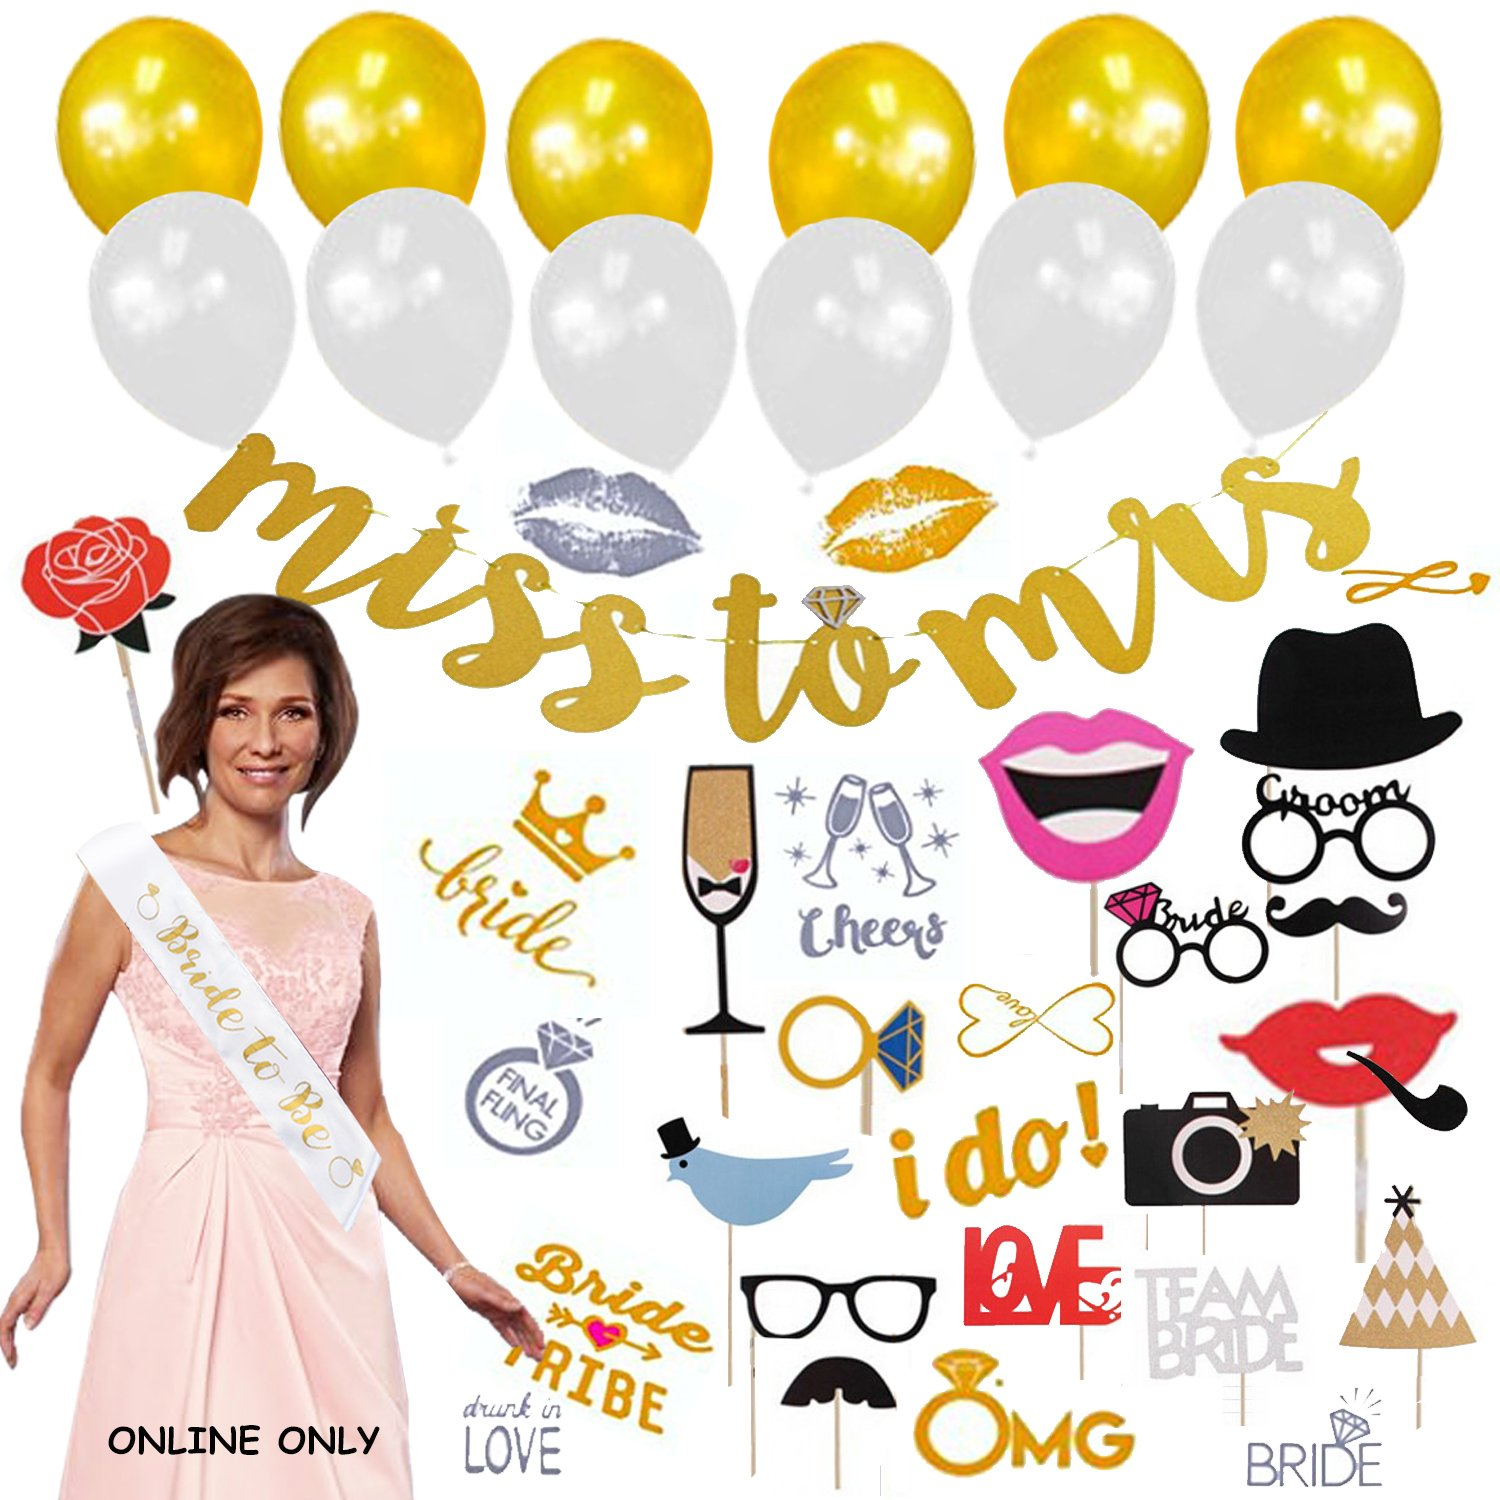 RJD Global Bachelorette Party Decorations Kit: Bridal Wedding Shower Set Bride To Be, Supplies Gifts Bride Photo Booth Props Bride Banner, Sash Goodies Great Bachelorette Present Girls Night Out